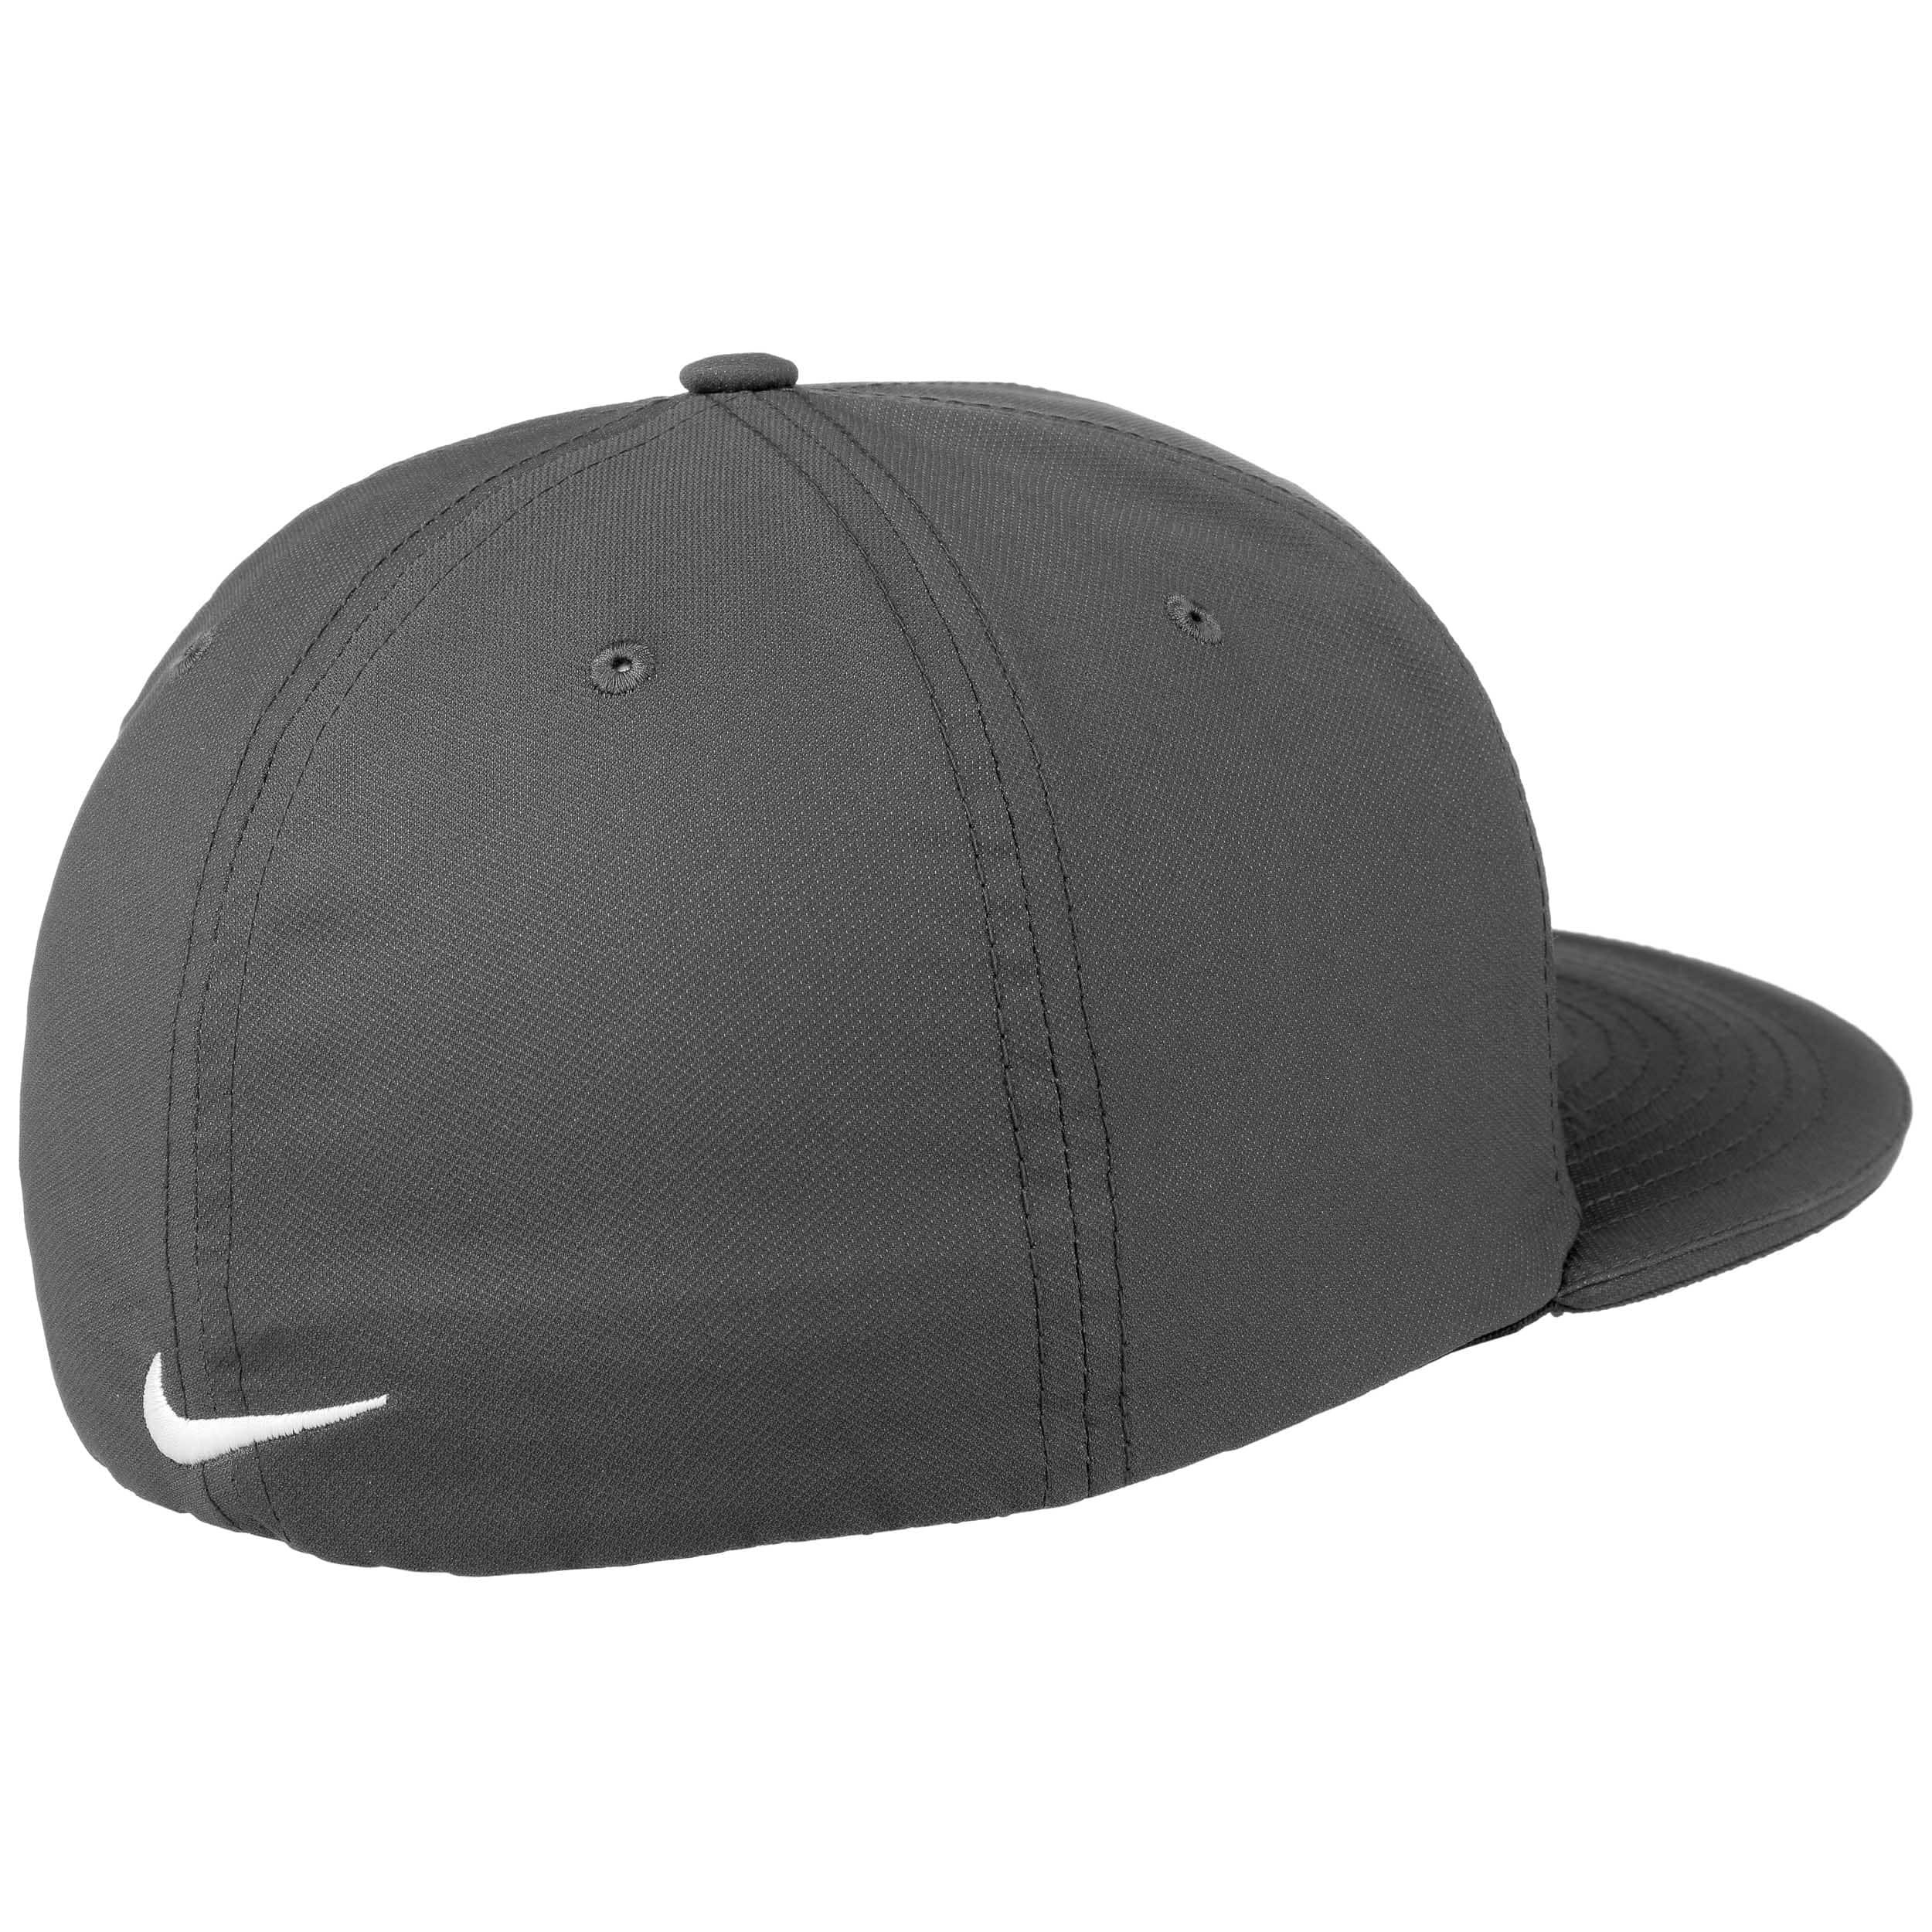 d73f641e2d37b ... True Statement Clima Uni Cap by Nike - dark grey 3 ...